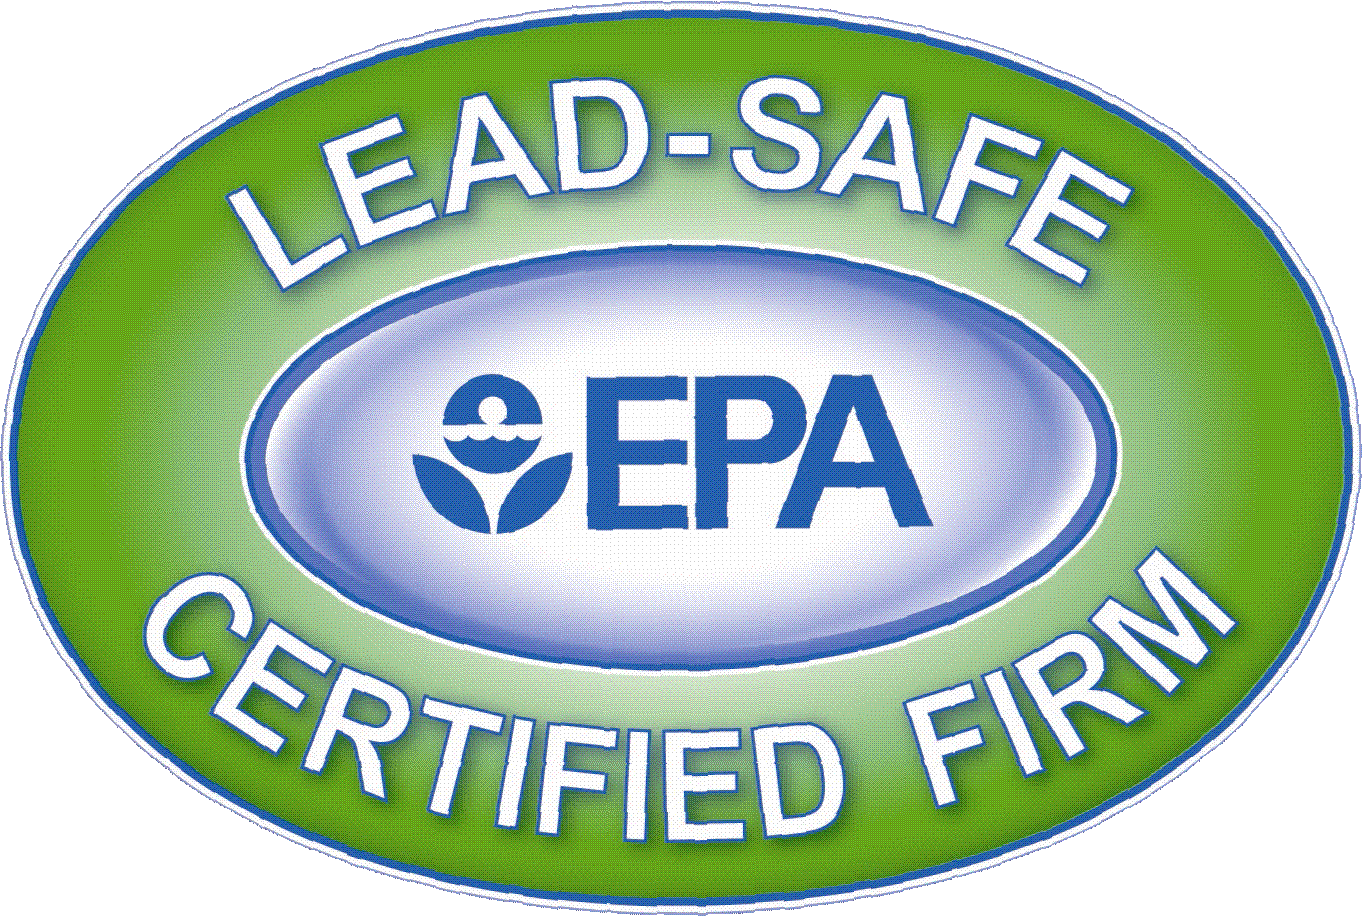 Lead Safe Certified Company In Westborough